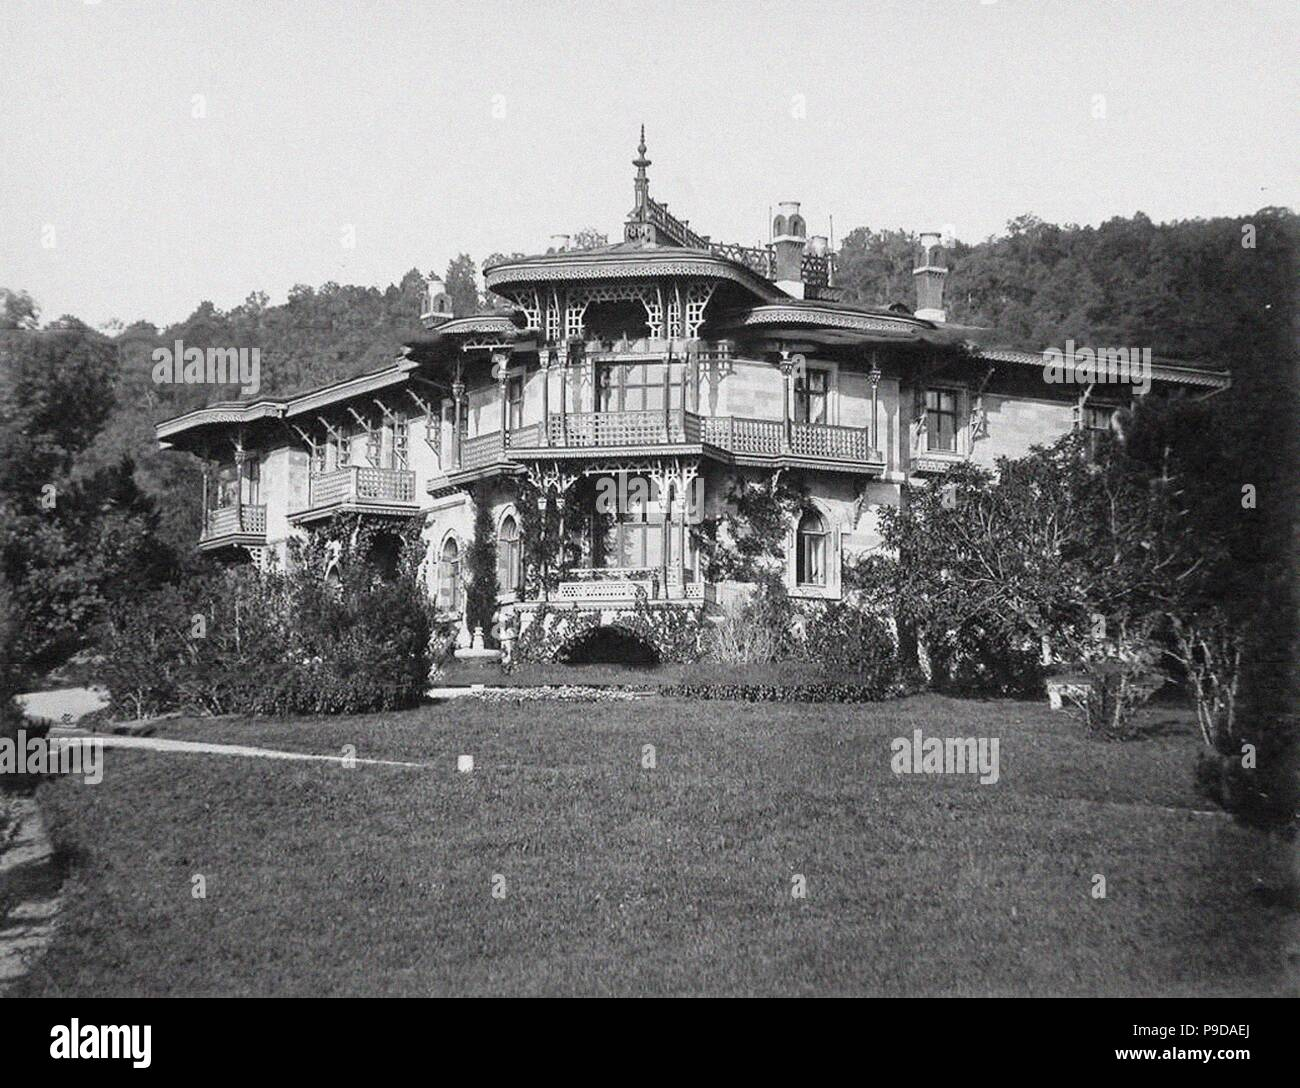 The small Livadiya palace. Museum: PRIVATE COLLECTION. - Stock Image